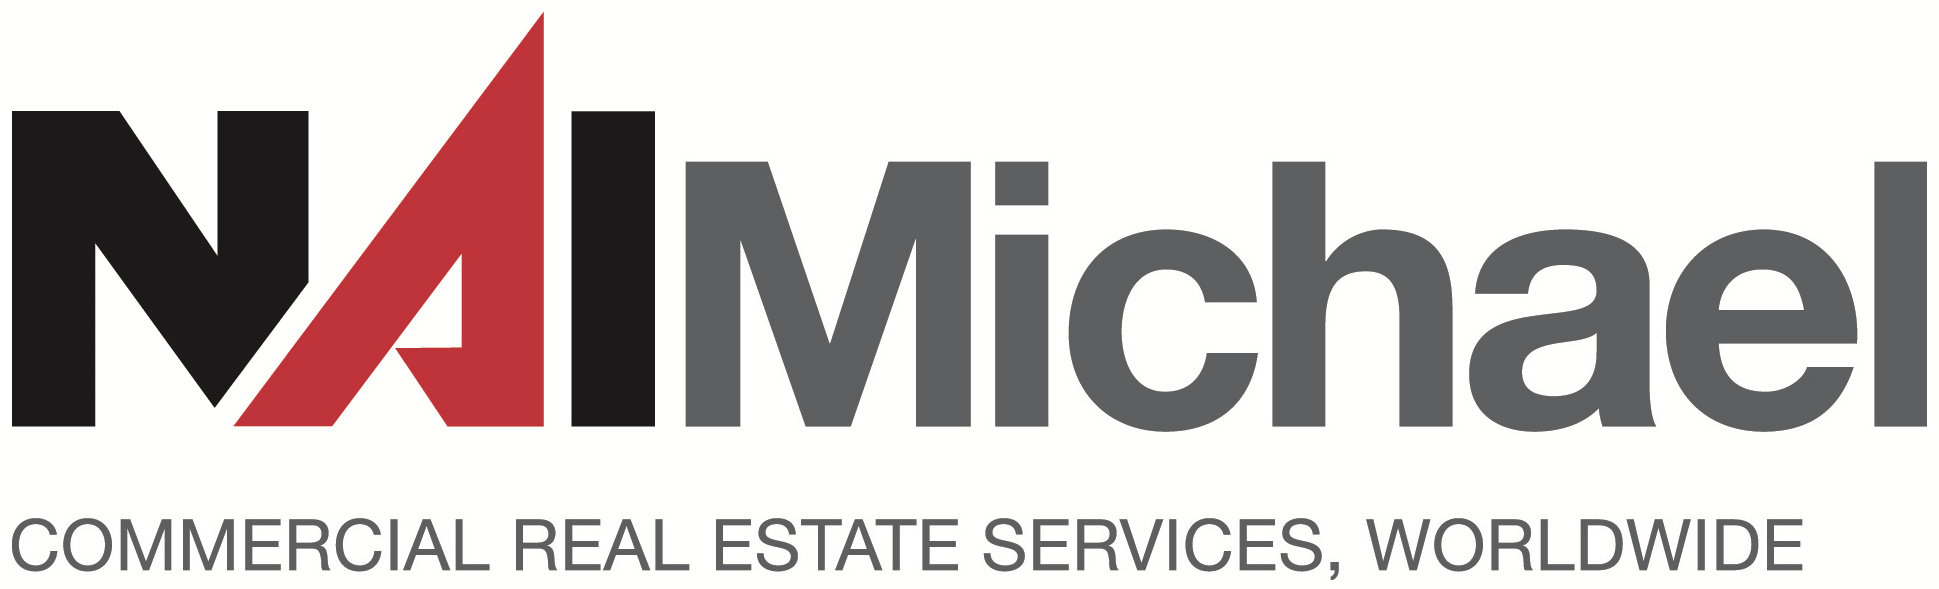 NAIMichael Commercial Real Estate Services, Worldwide